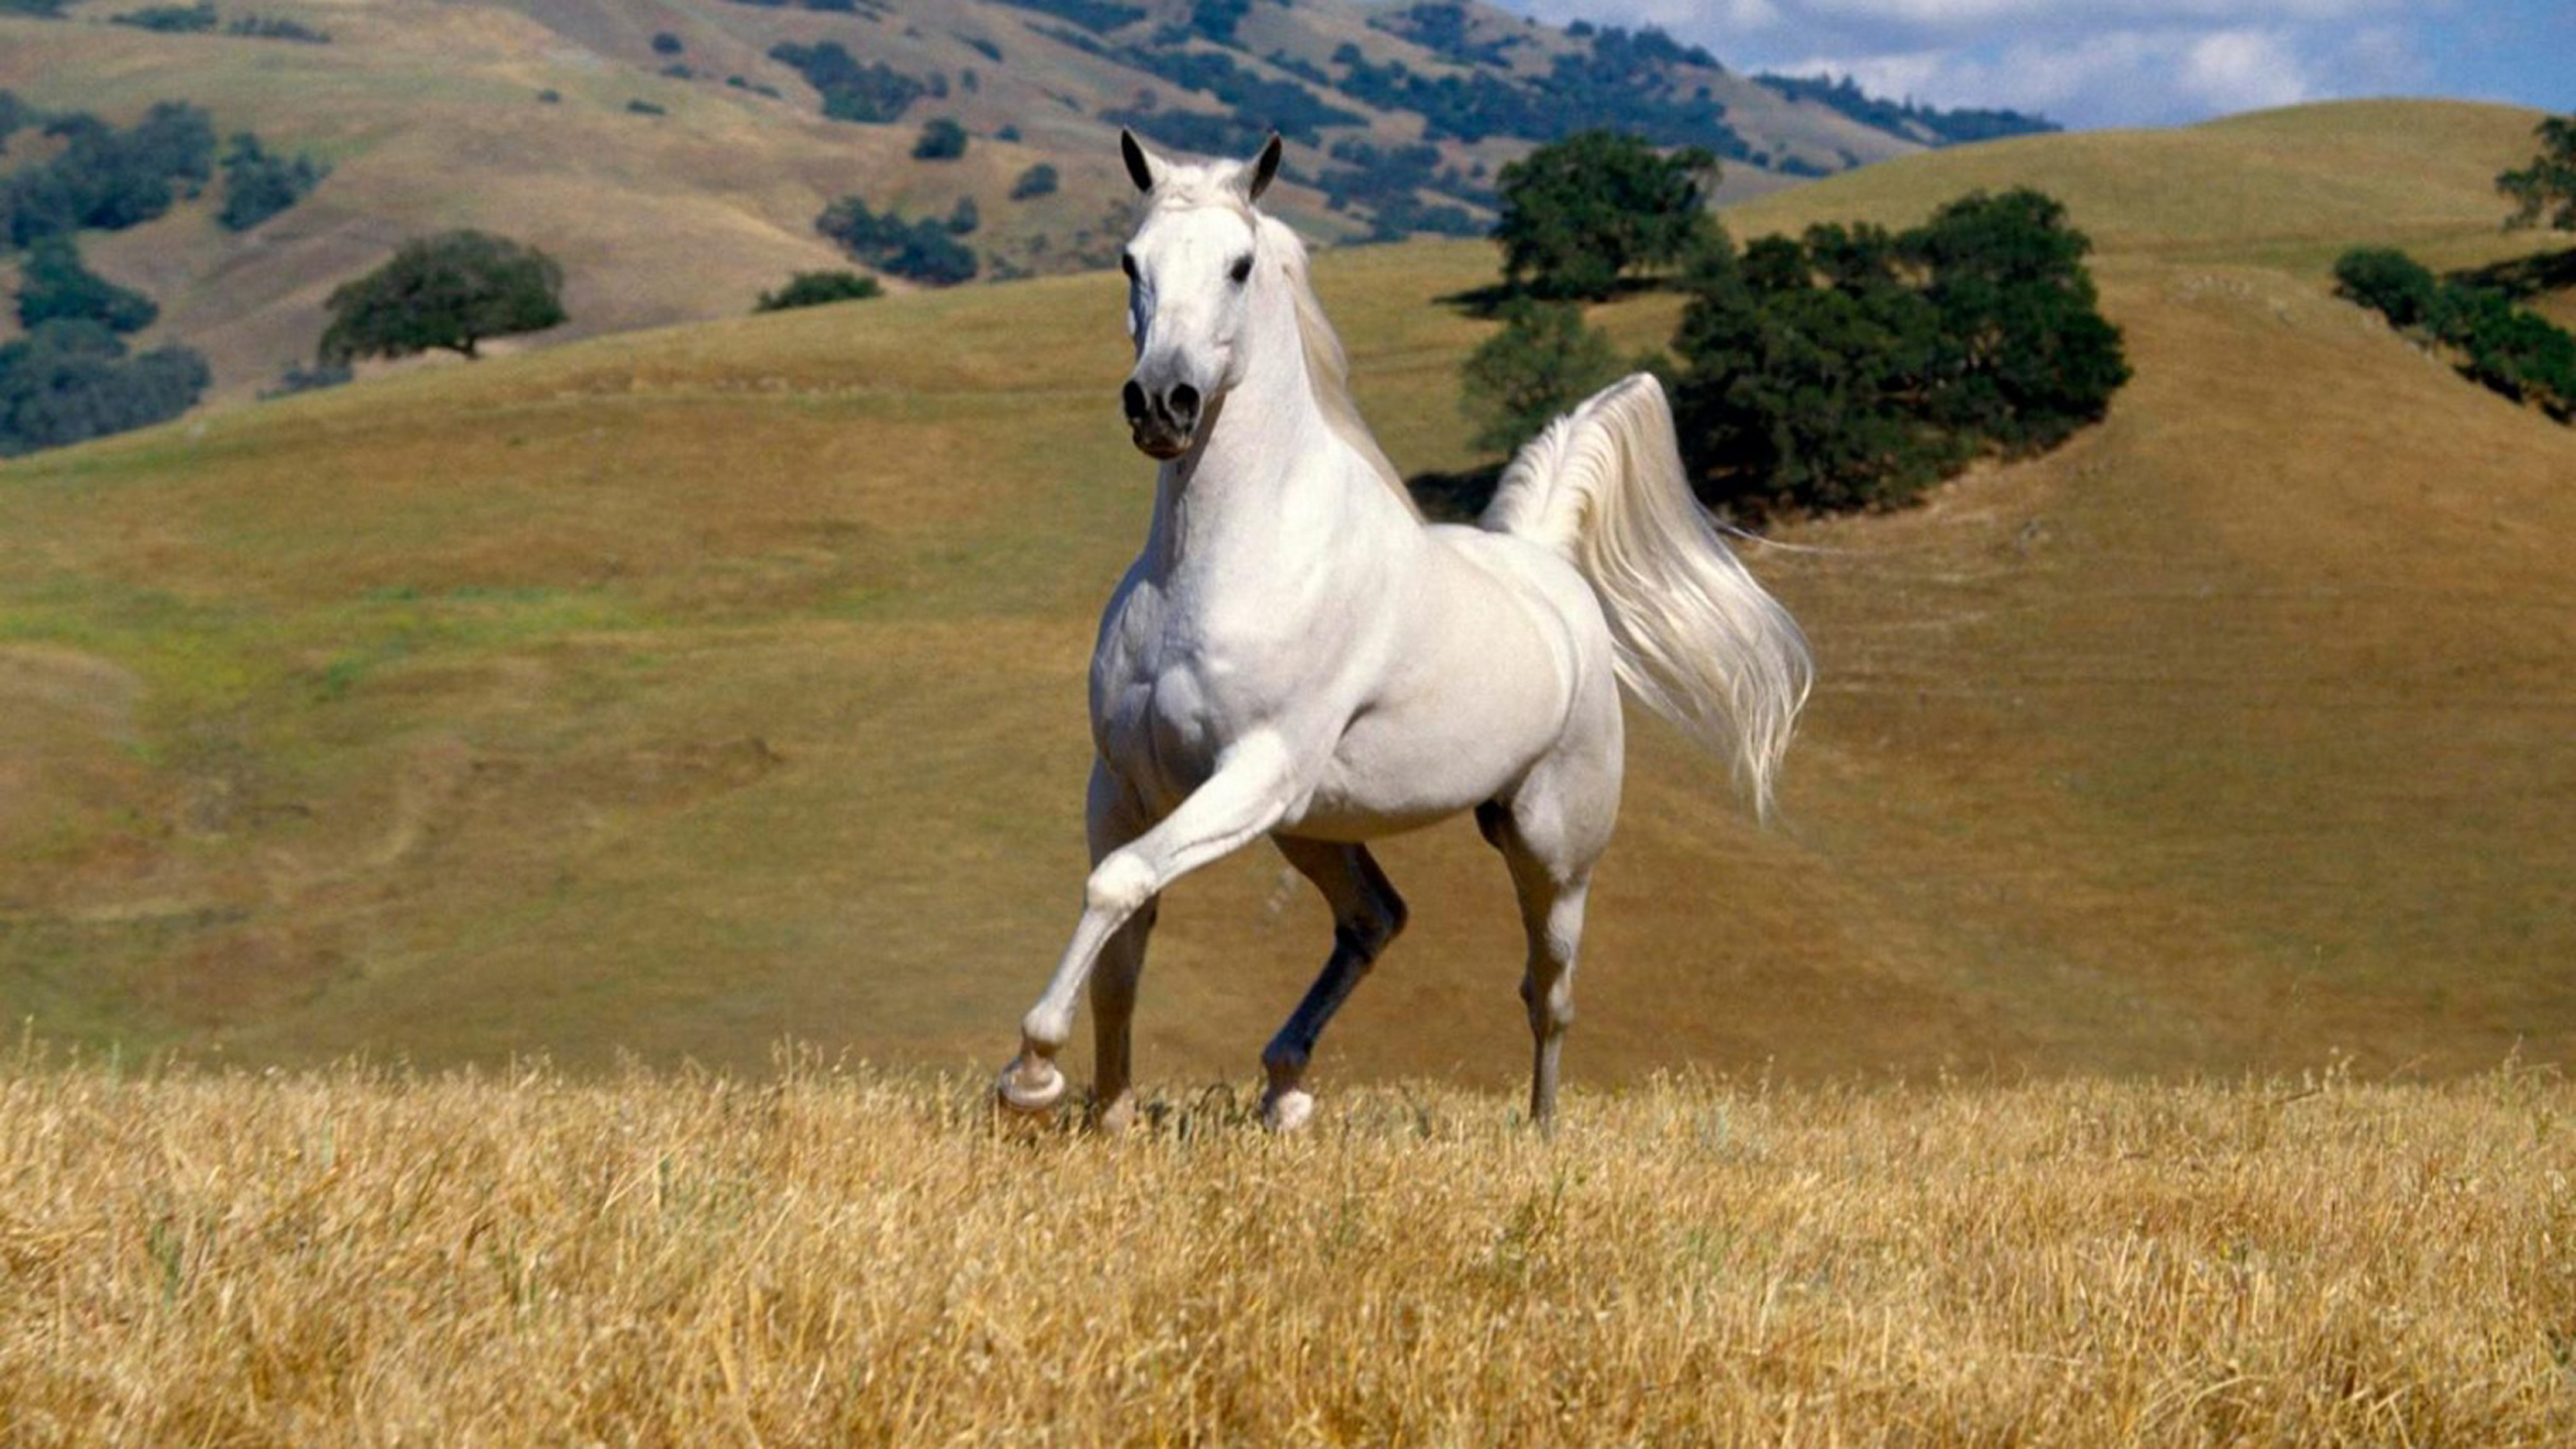 Beautiful Wild Animals Wallpapers Beautiful White Horse Galloping In Field Hd Wallpaper